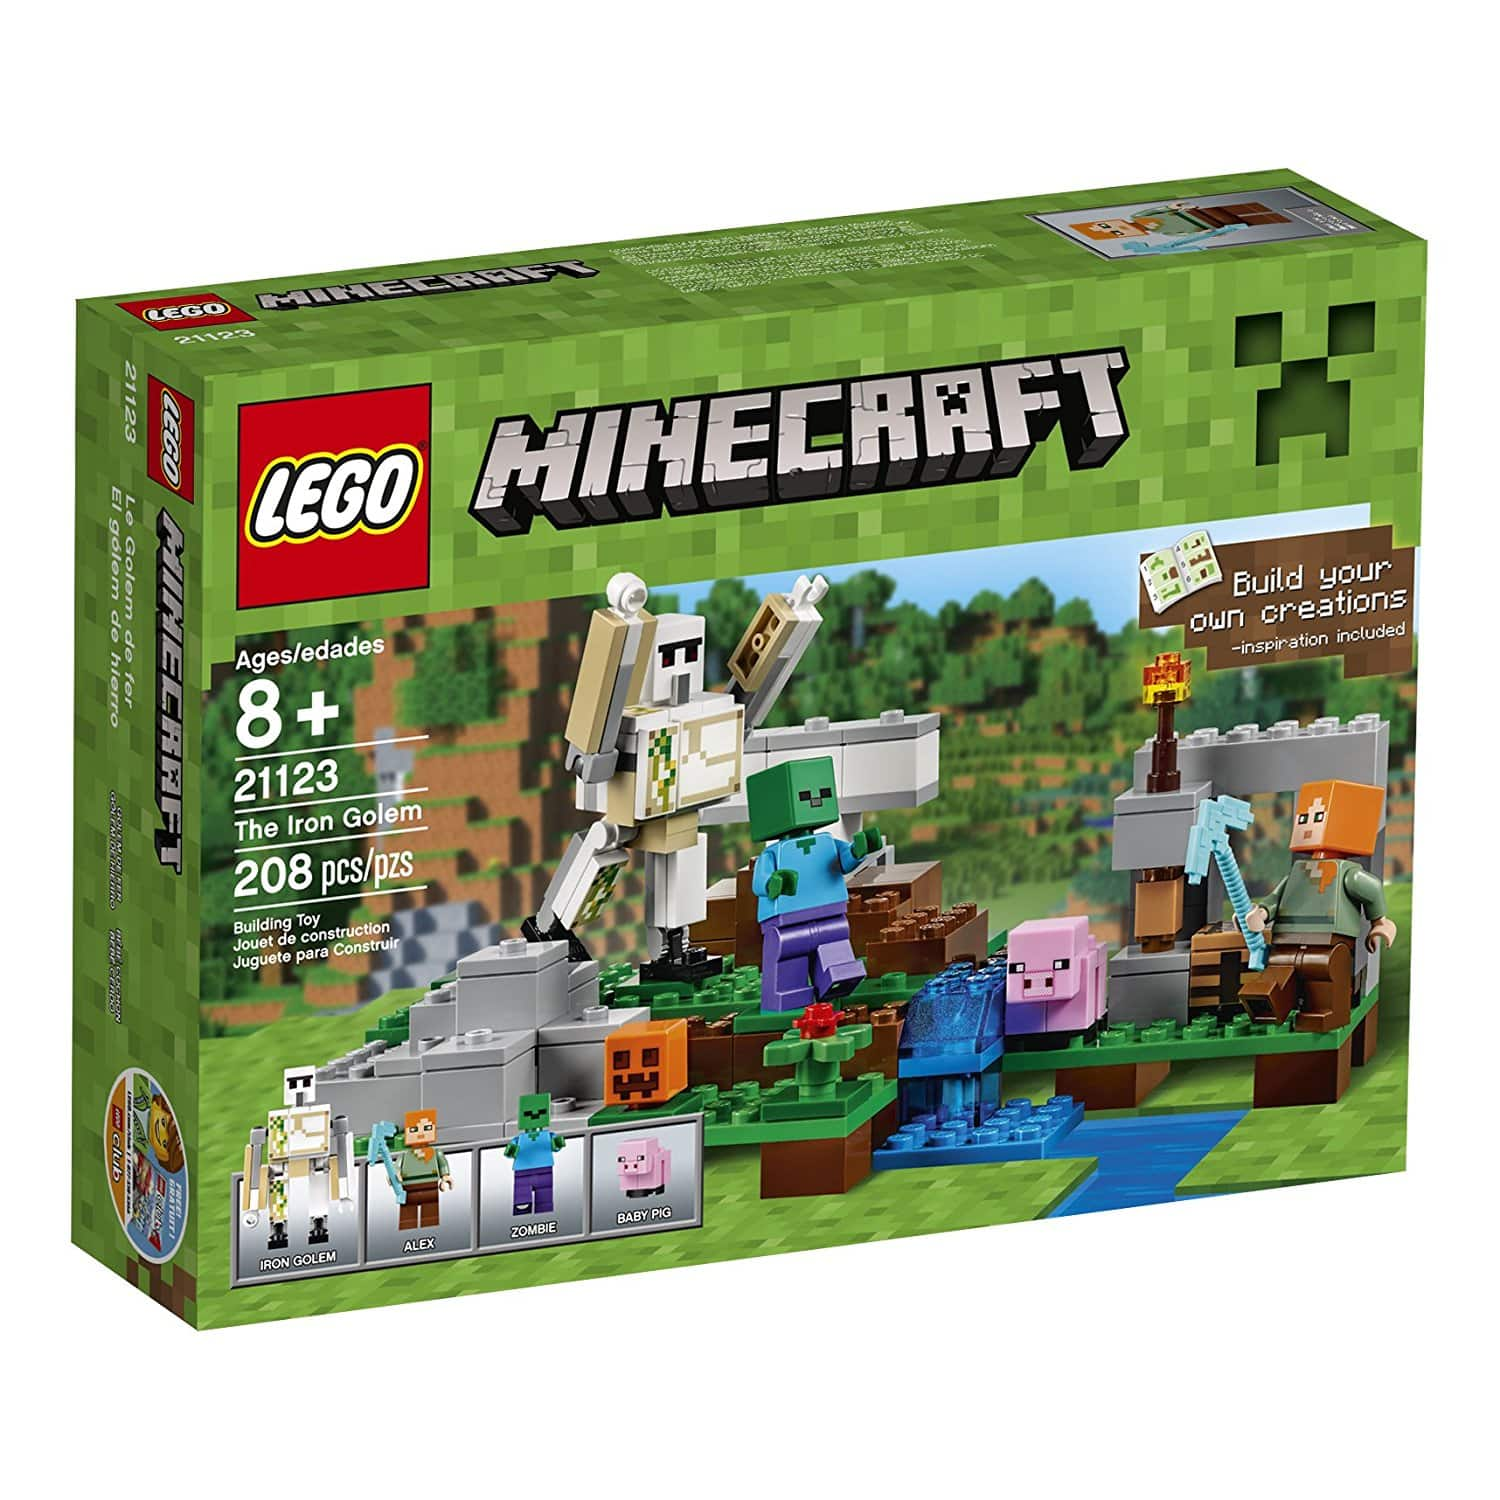 Lego Minecraft iron golem 21123 at reduced price $11(45% off) from $19.99 @amazom